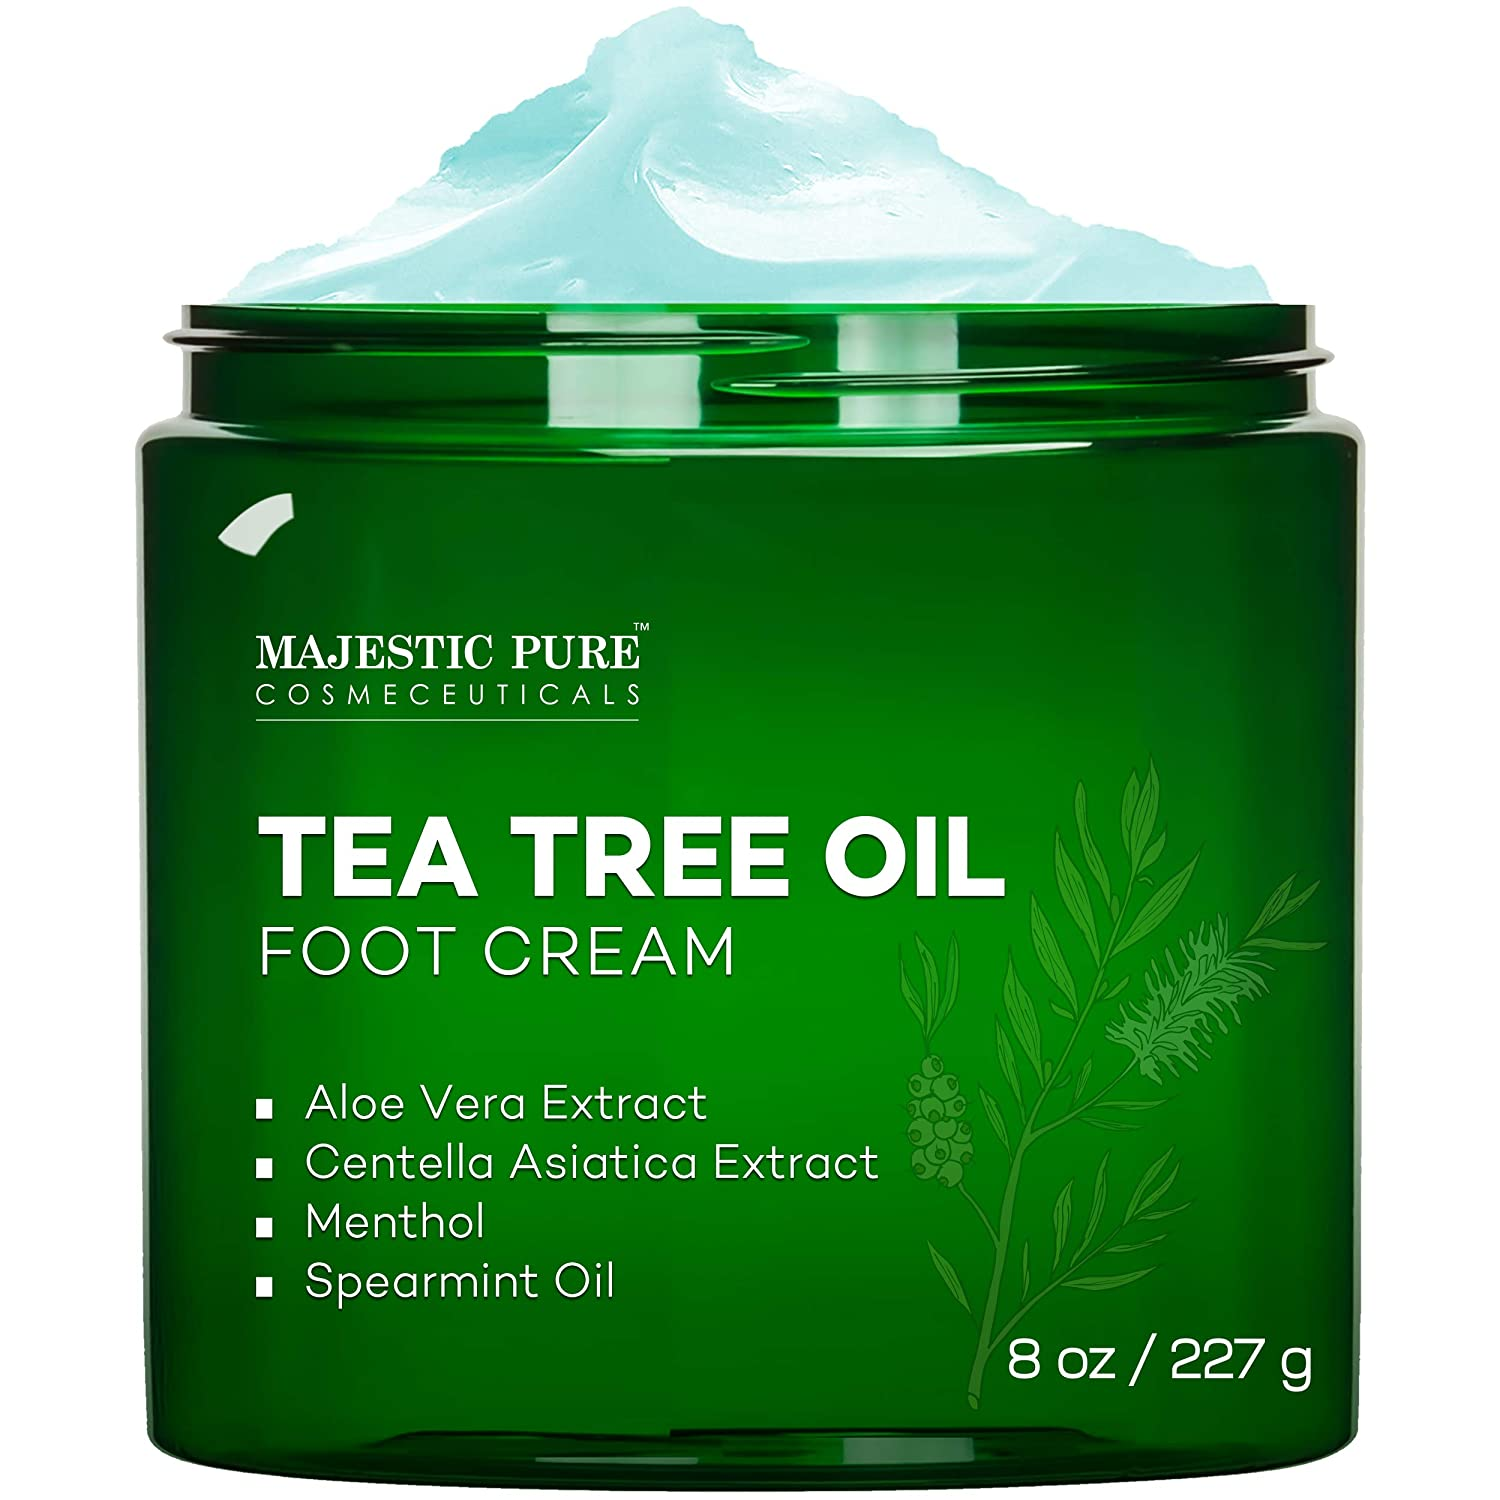 Majestic Pure Tea Tree Foot Cream -Fights Fungus, Softens and Conditions Dry Skin and Calluses, 8 oz